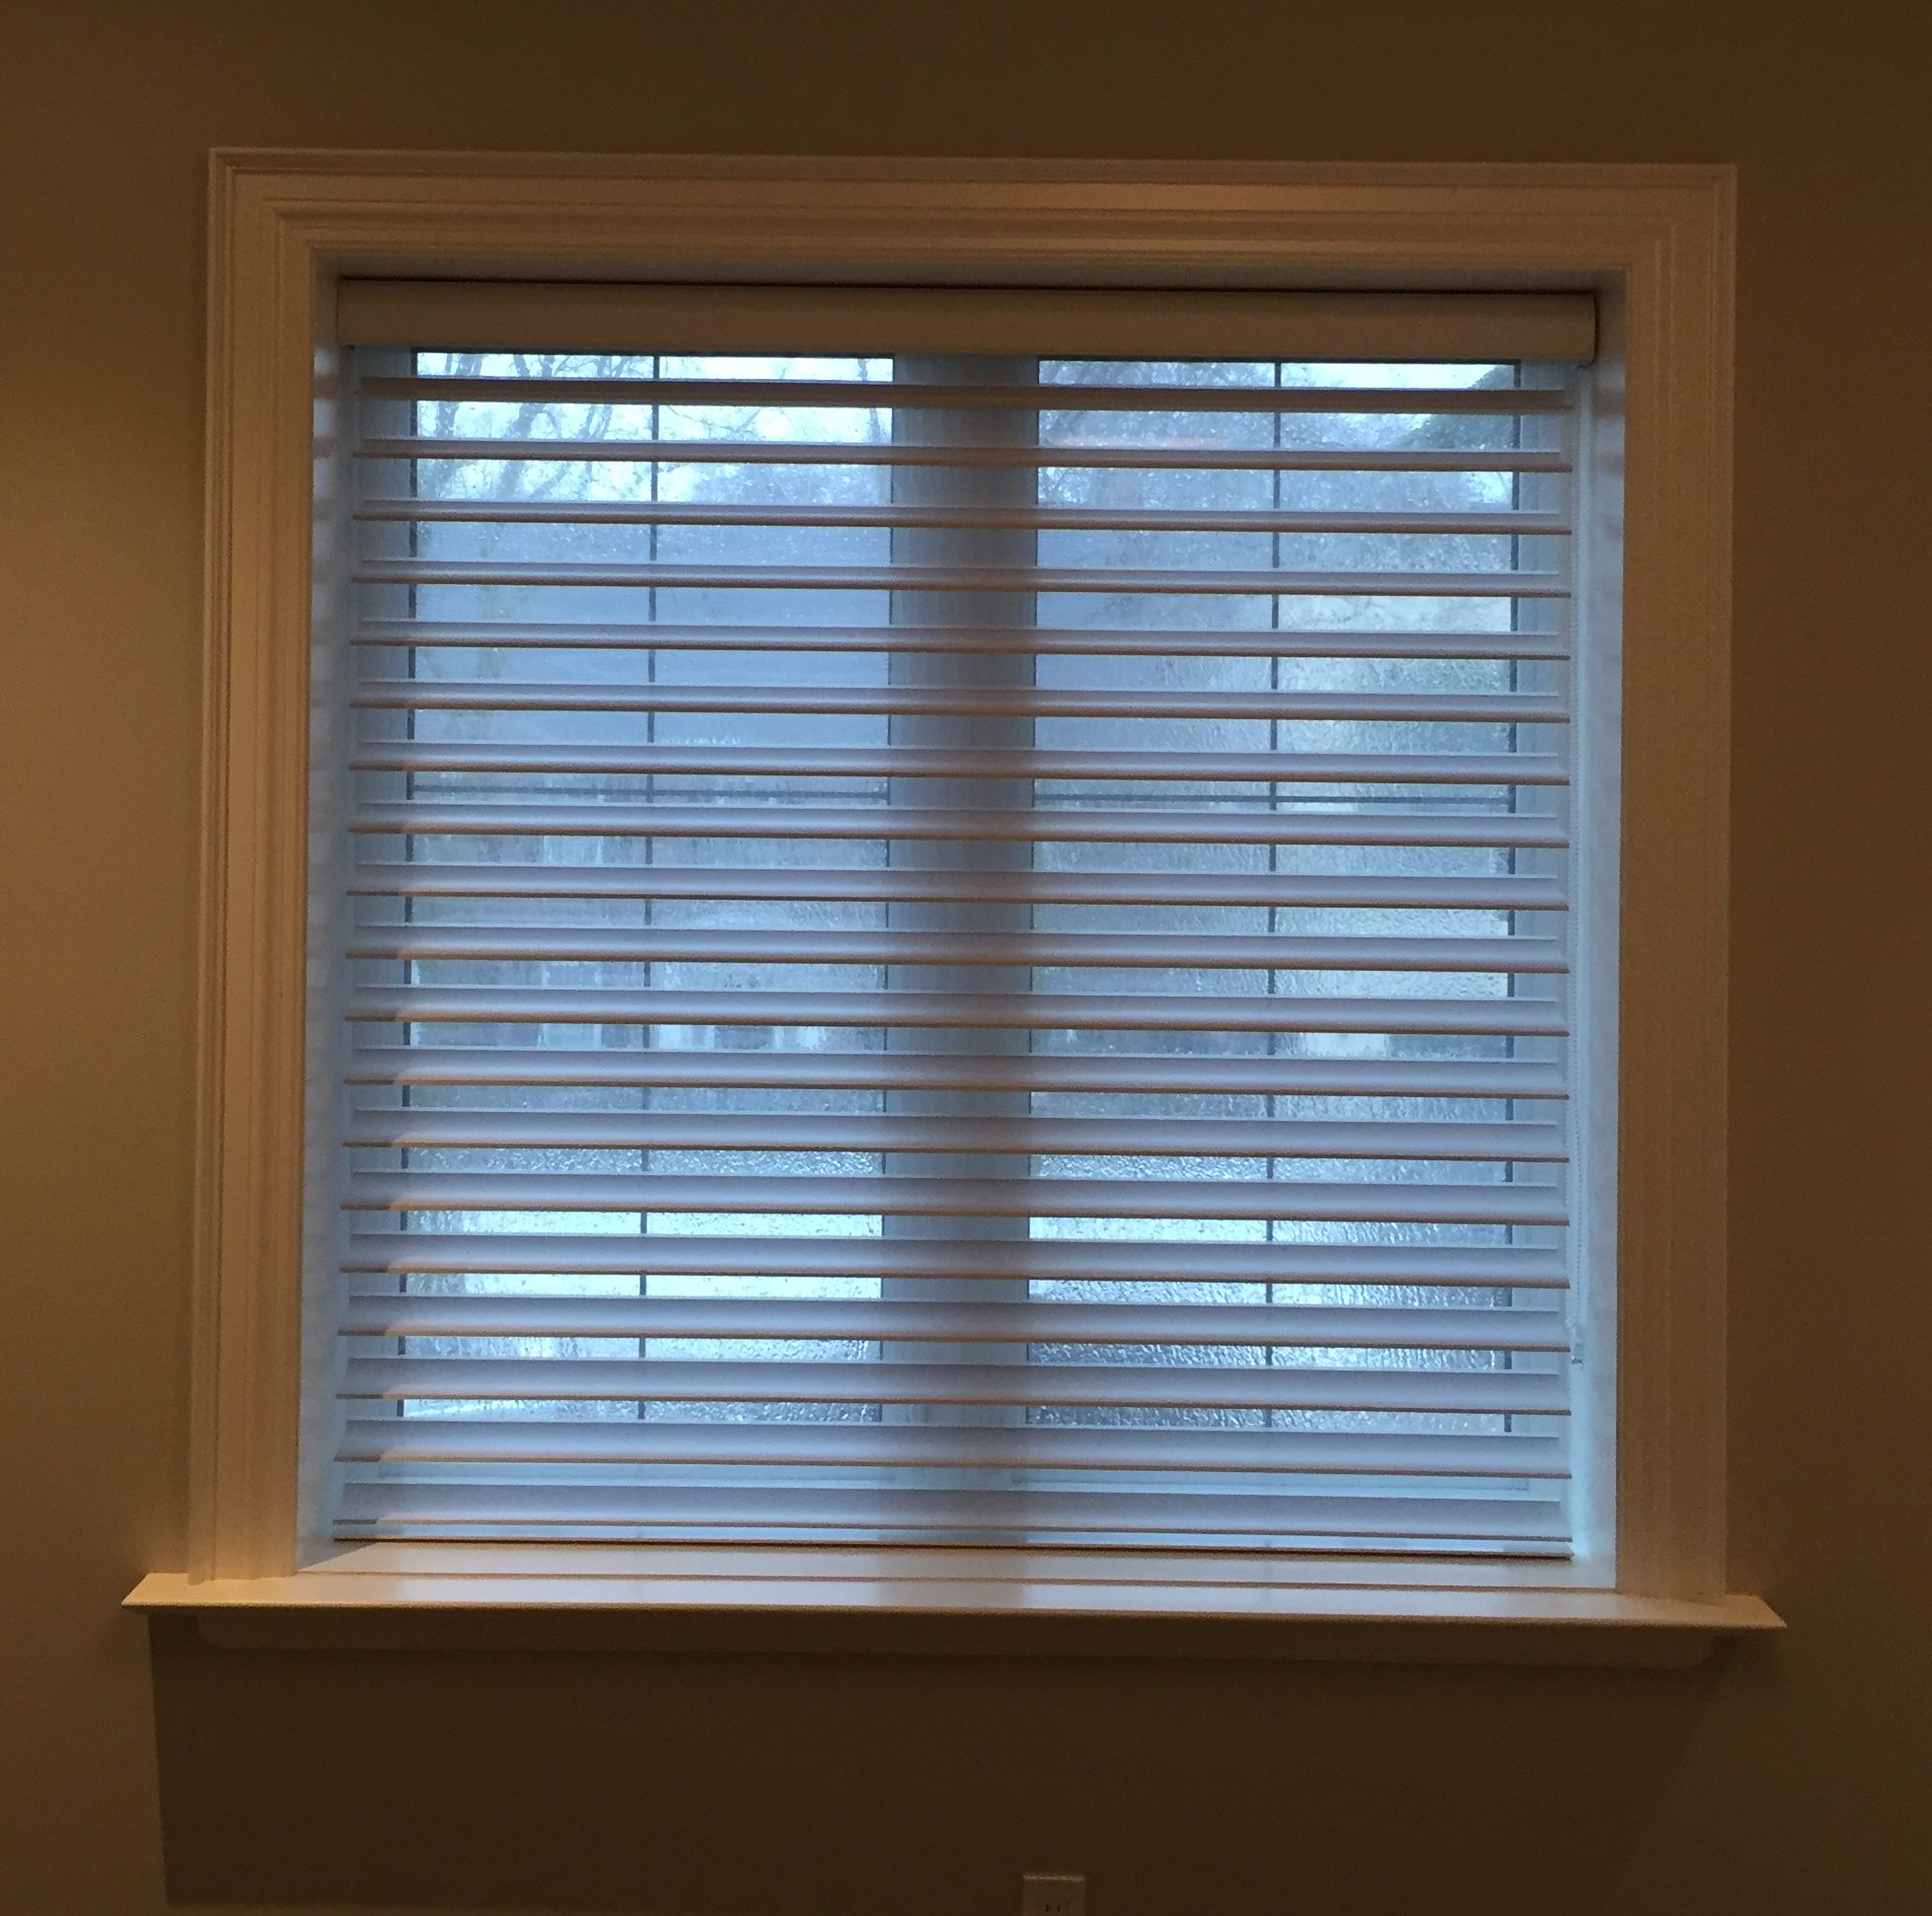 photos full vertical window attachedhanging graber drapery of ideas size blindswindow with hanging blinds sheer curtains